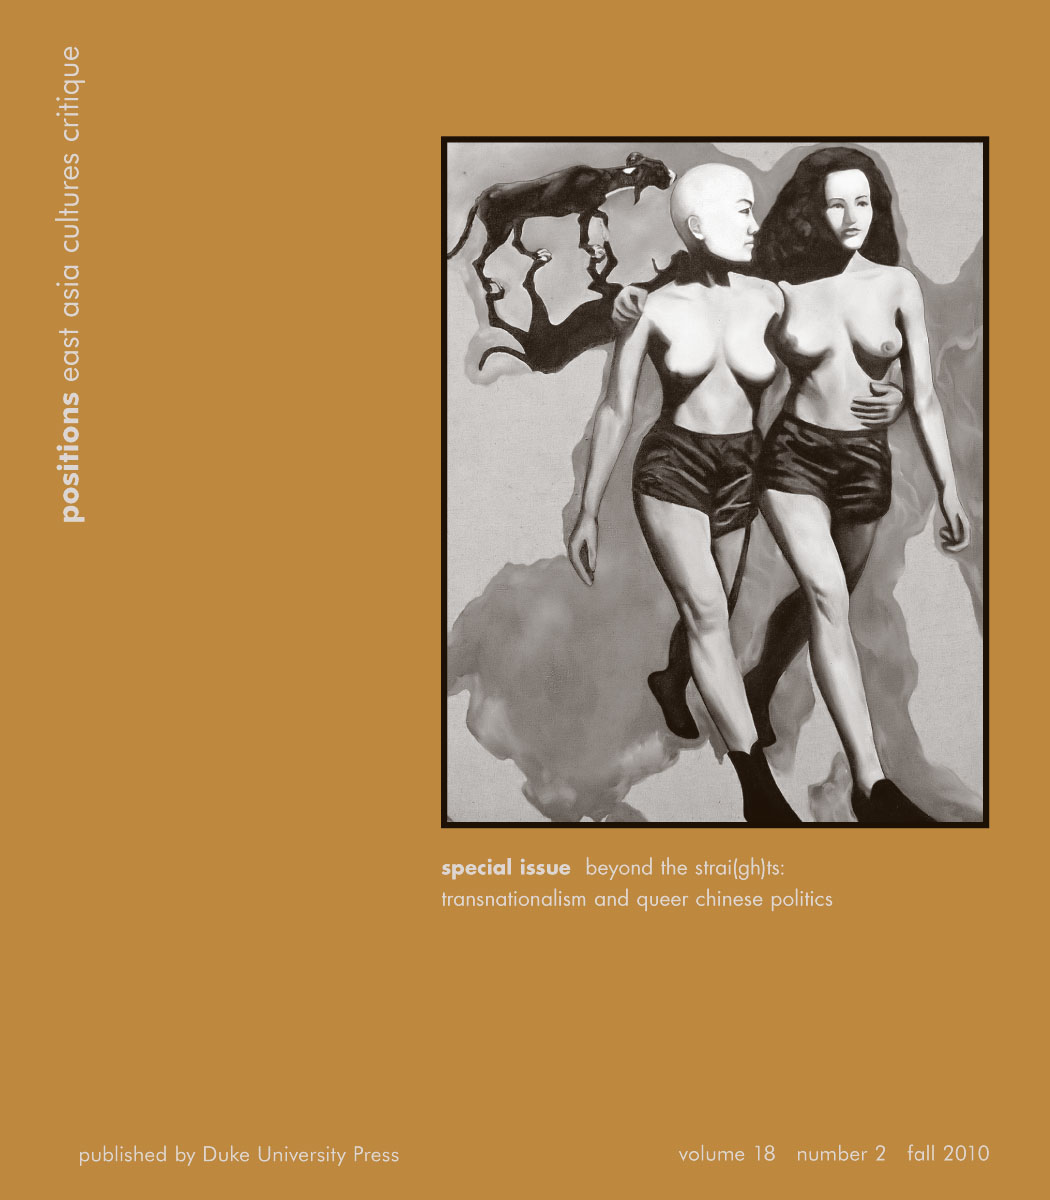 Journal of language and sexuality